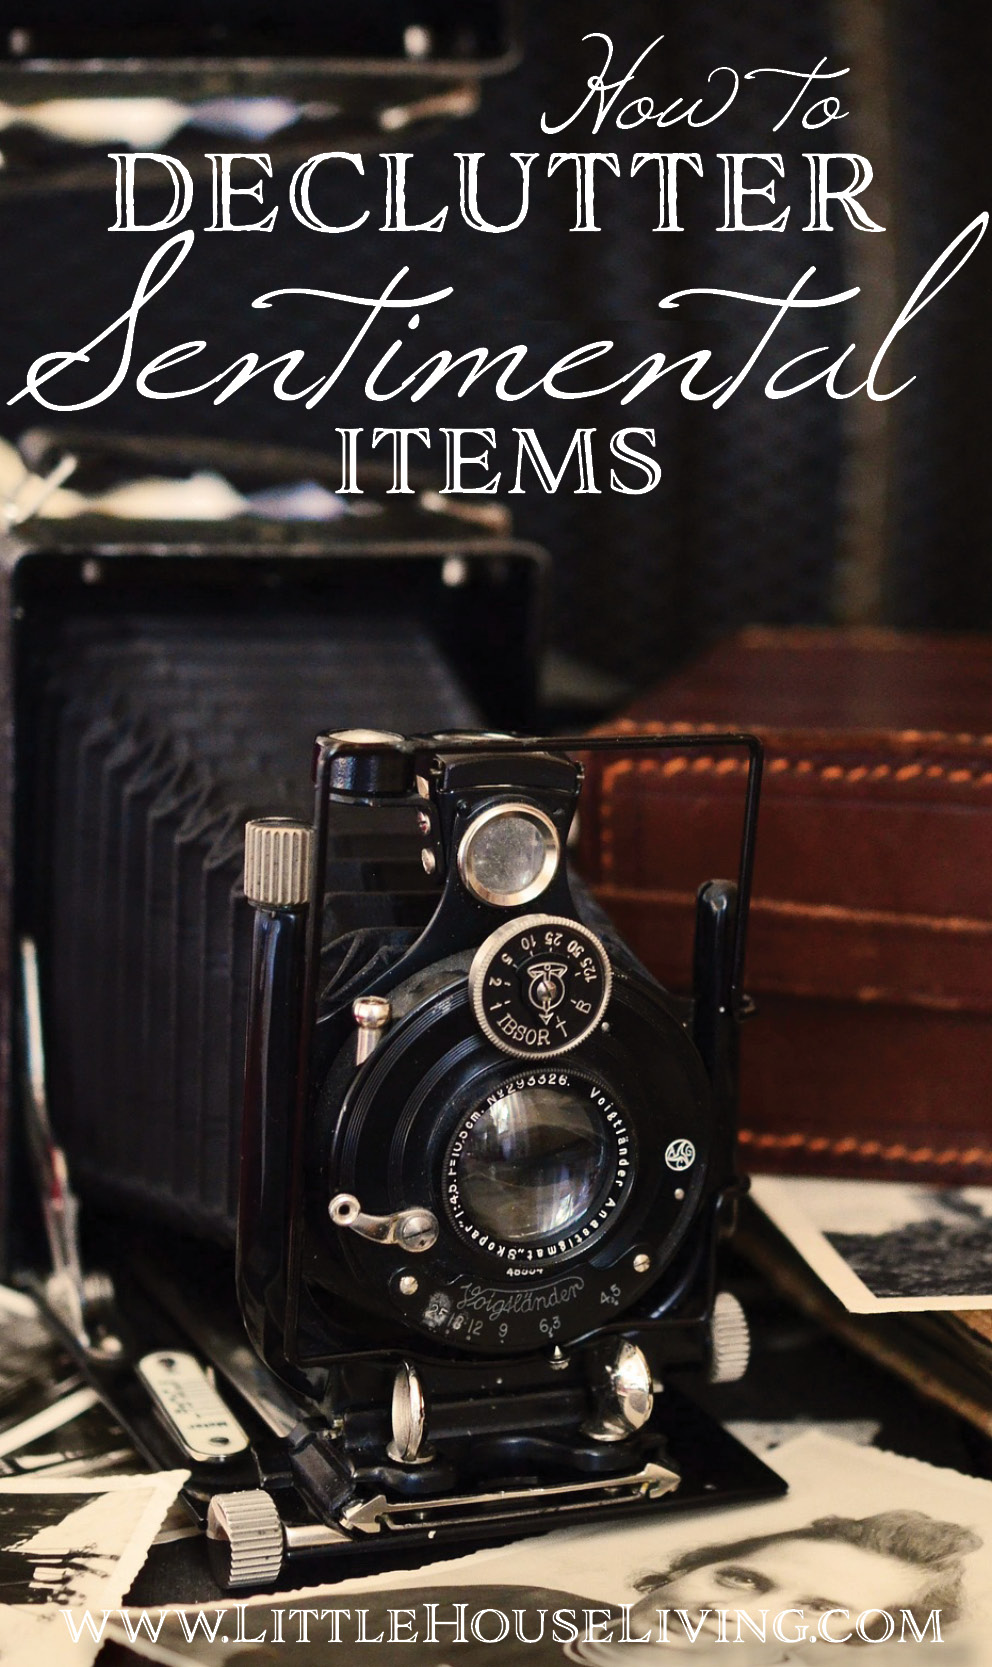 Stop procrastinating over decluttering sentimental items by following the simple ideas outlined in this blog article.  #decluttering #minimalism #minimalist #declutter #cleanout #organization #howtodeclutter